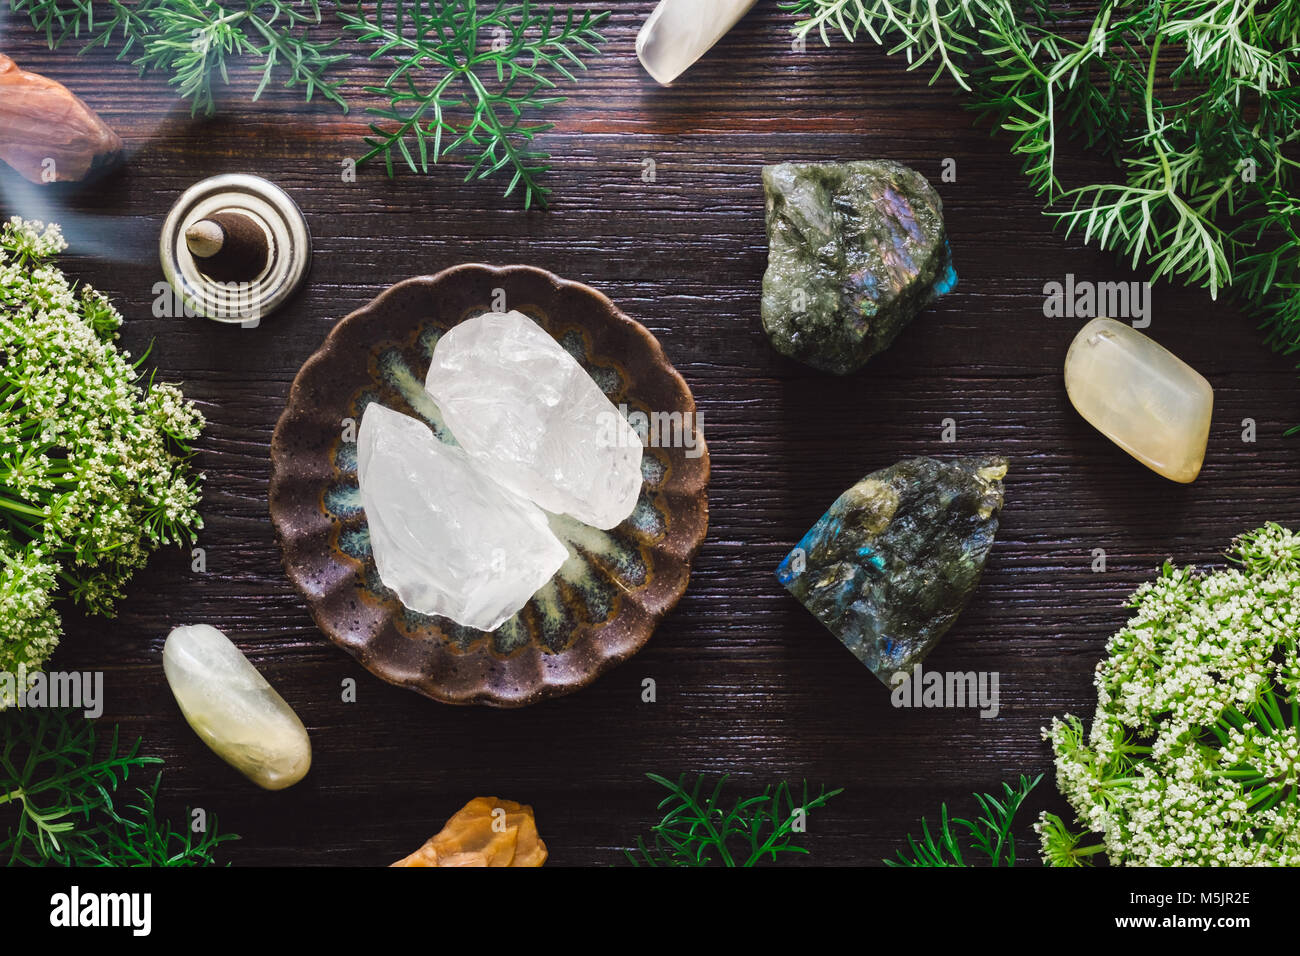 Ceramic Bowl of Girasol with Moonstone, Labradorite and Incense on Dark Table - Stock Image